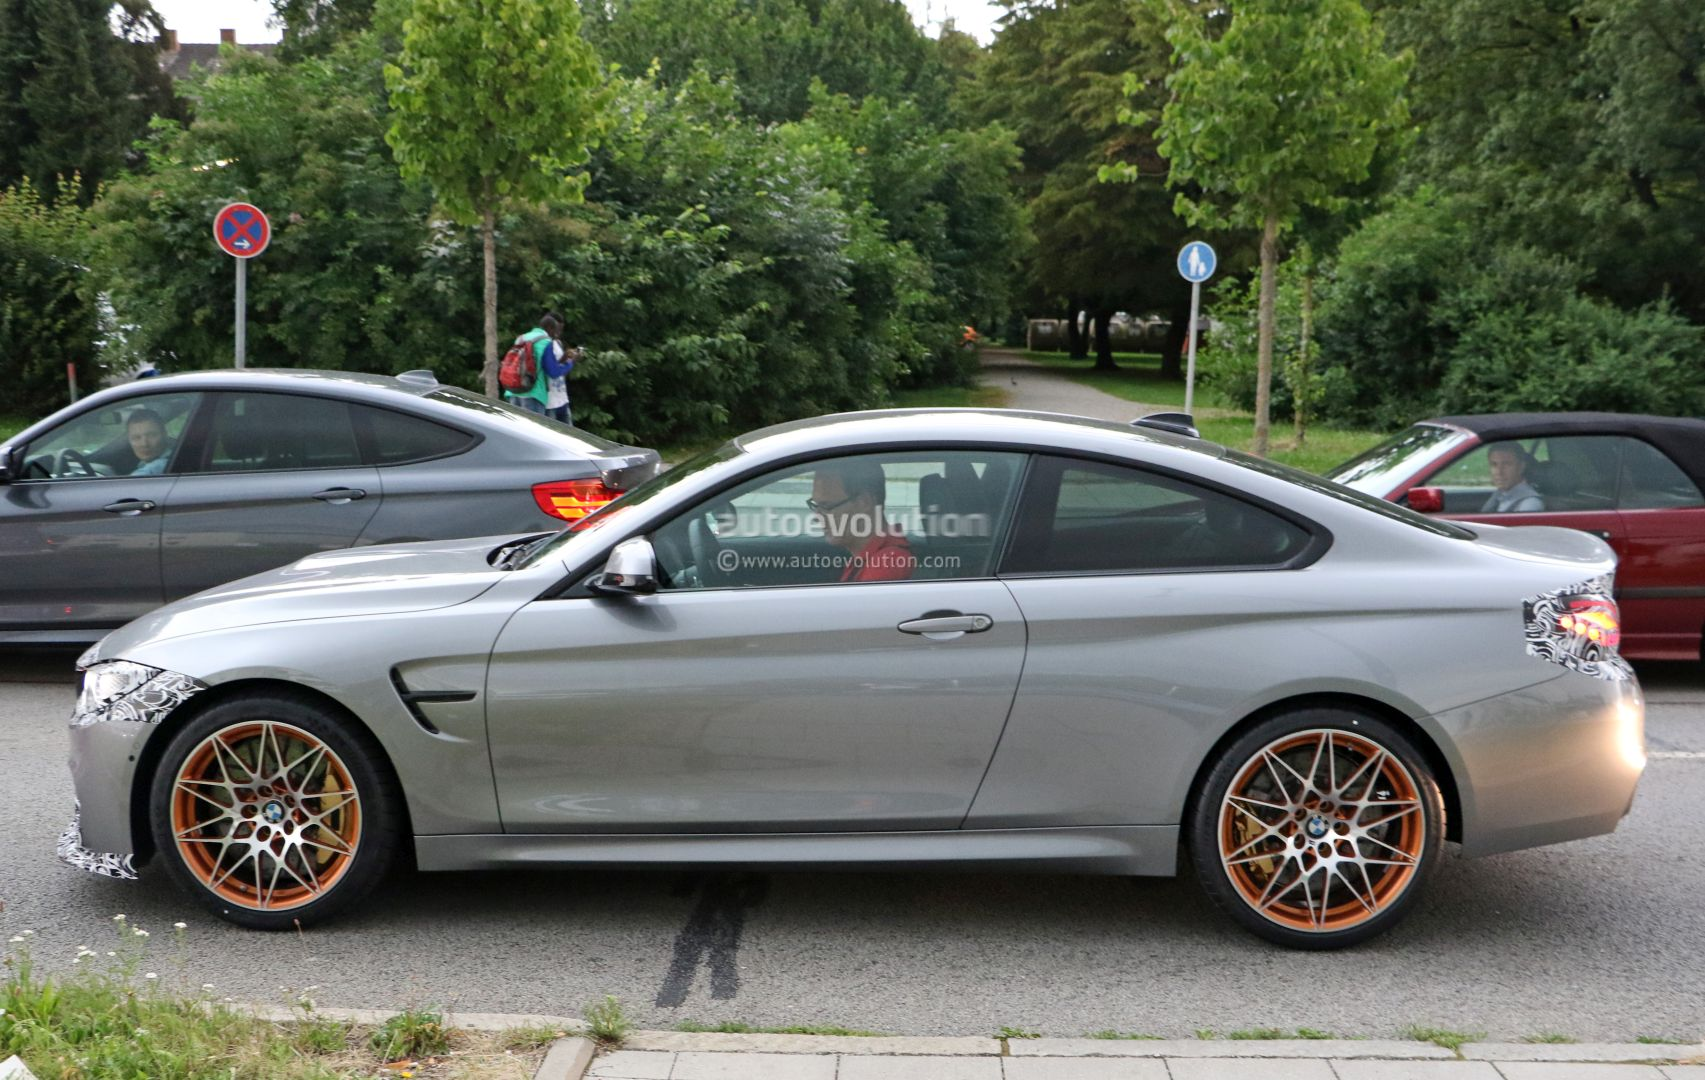 2018 Bmw M4 Facelift Lci Spied With M4 Gts Like Camouflaged Front